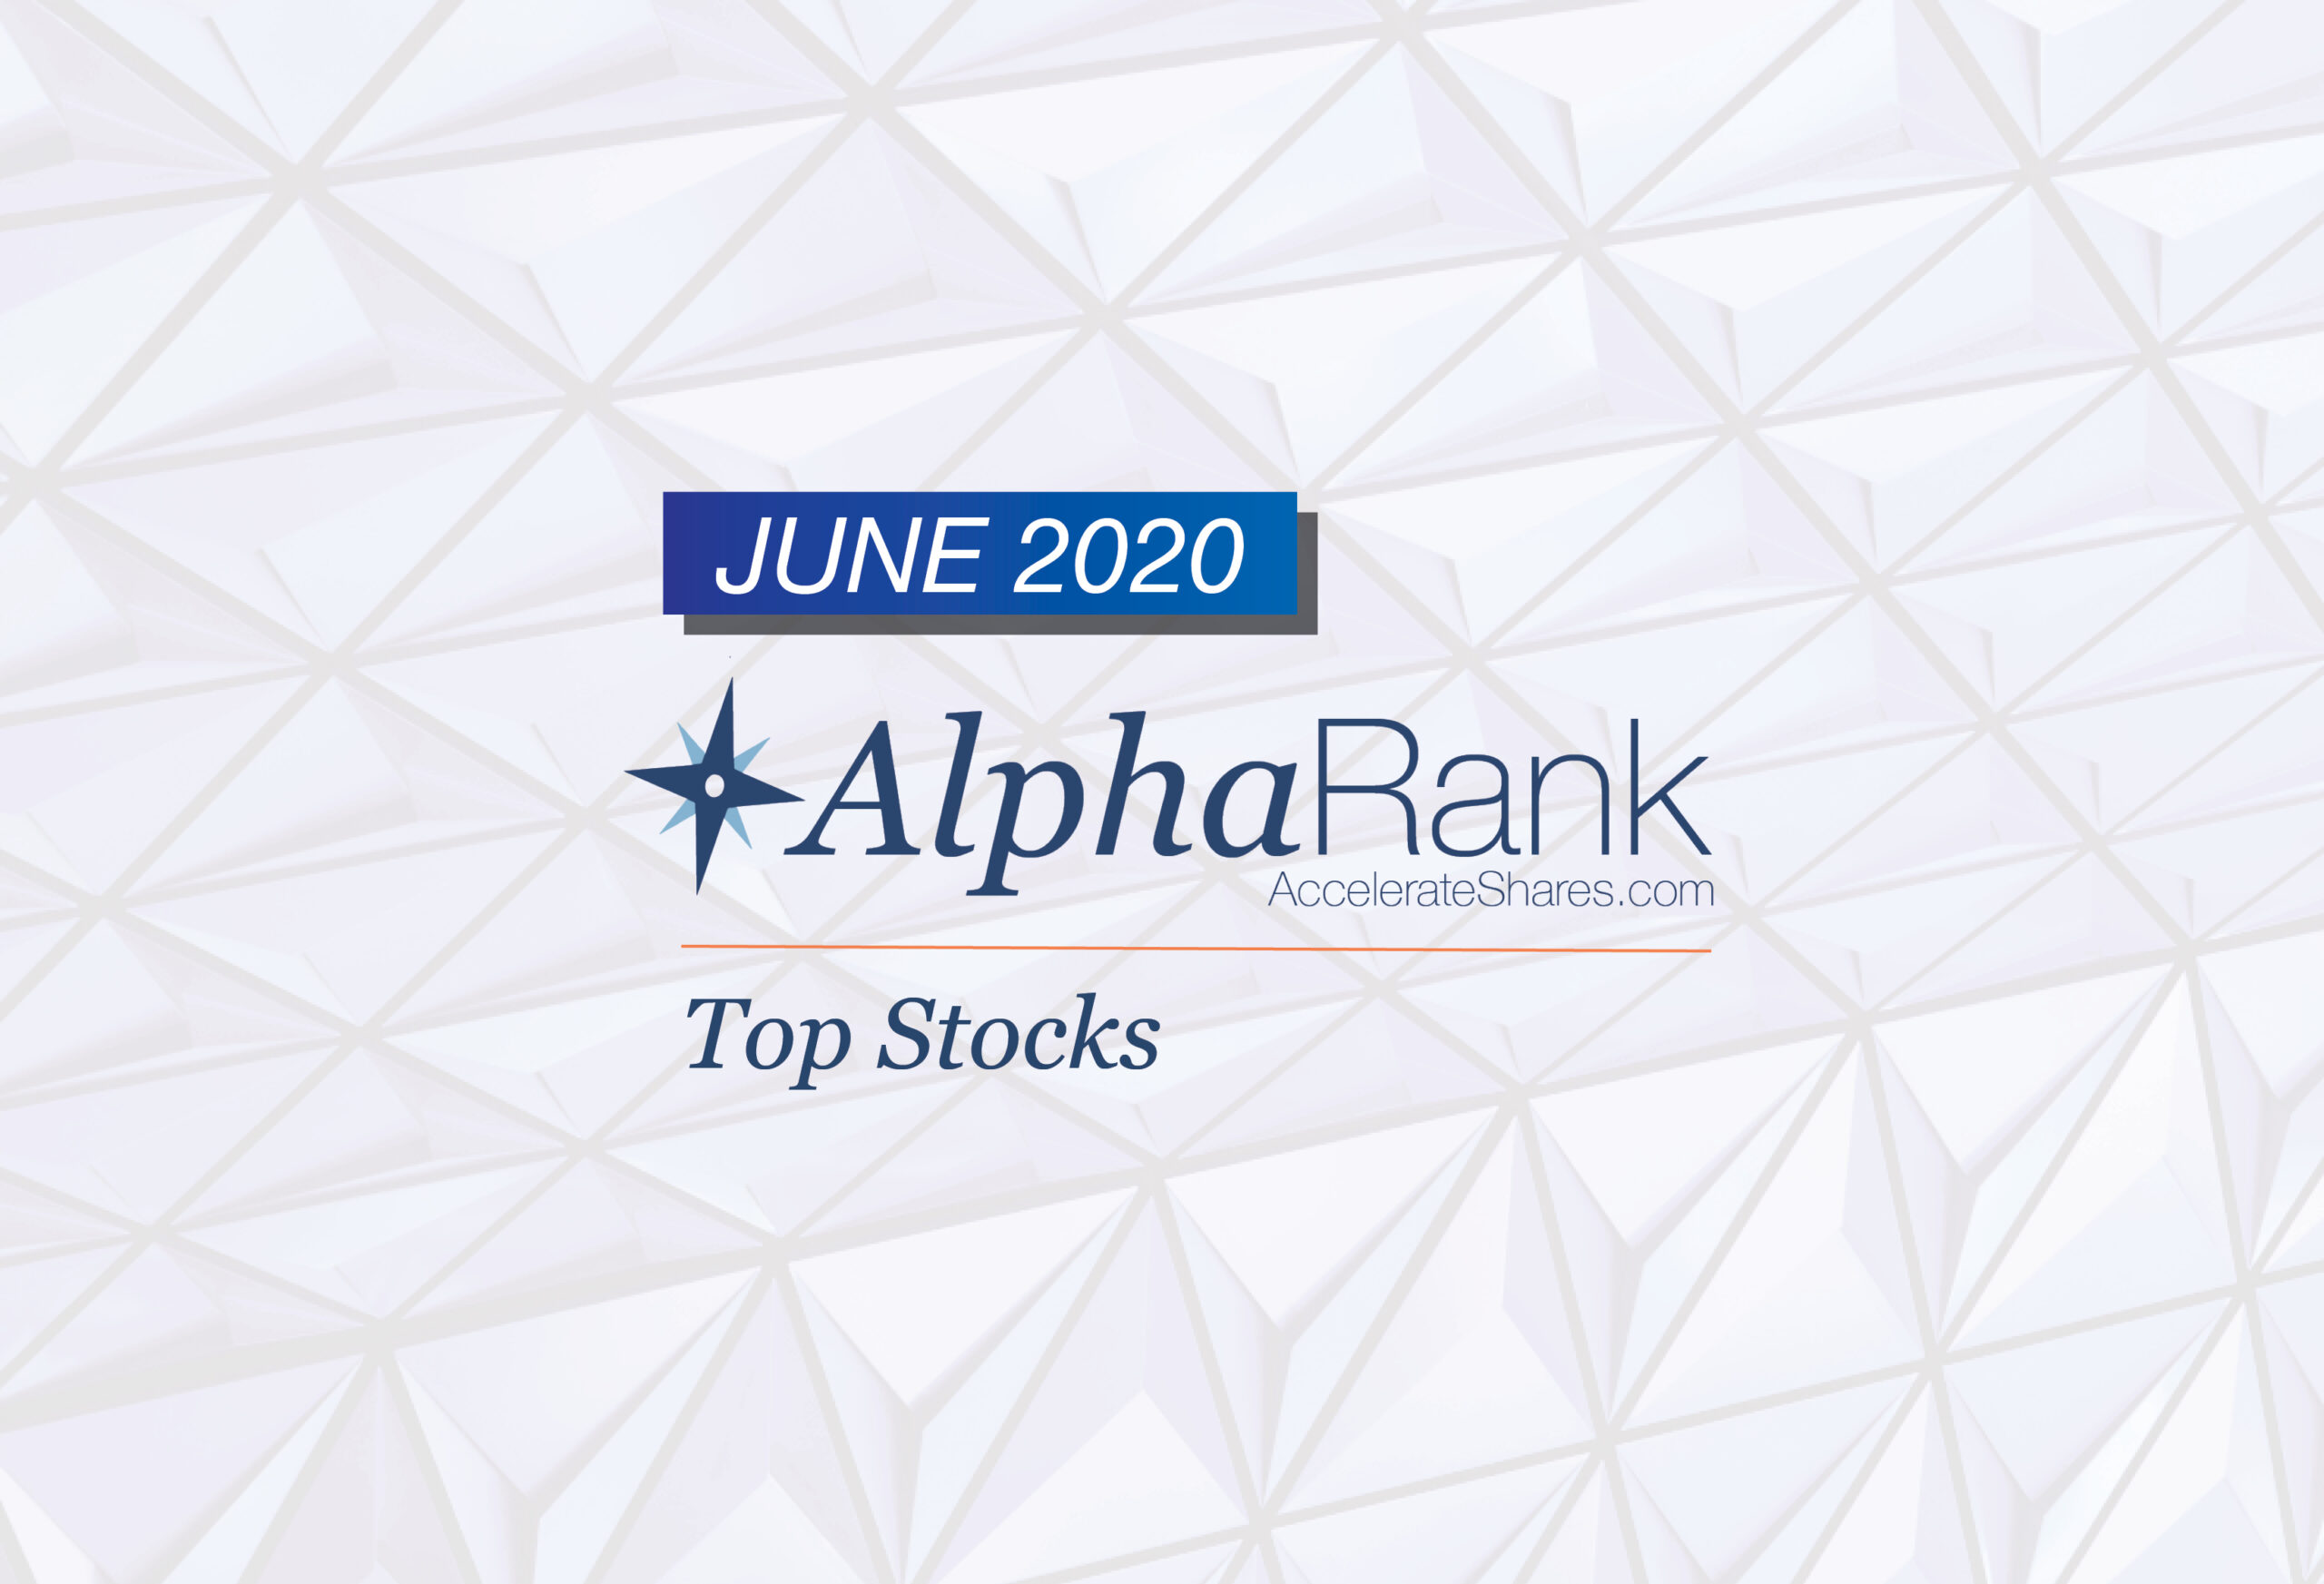 AlphaRank Top Stocks– June 2020